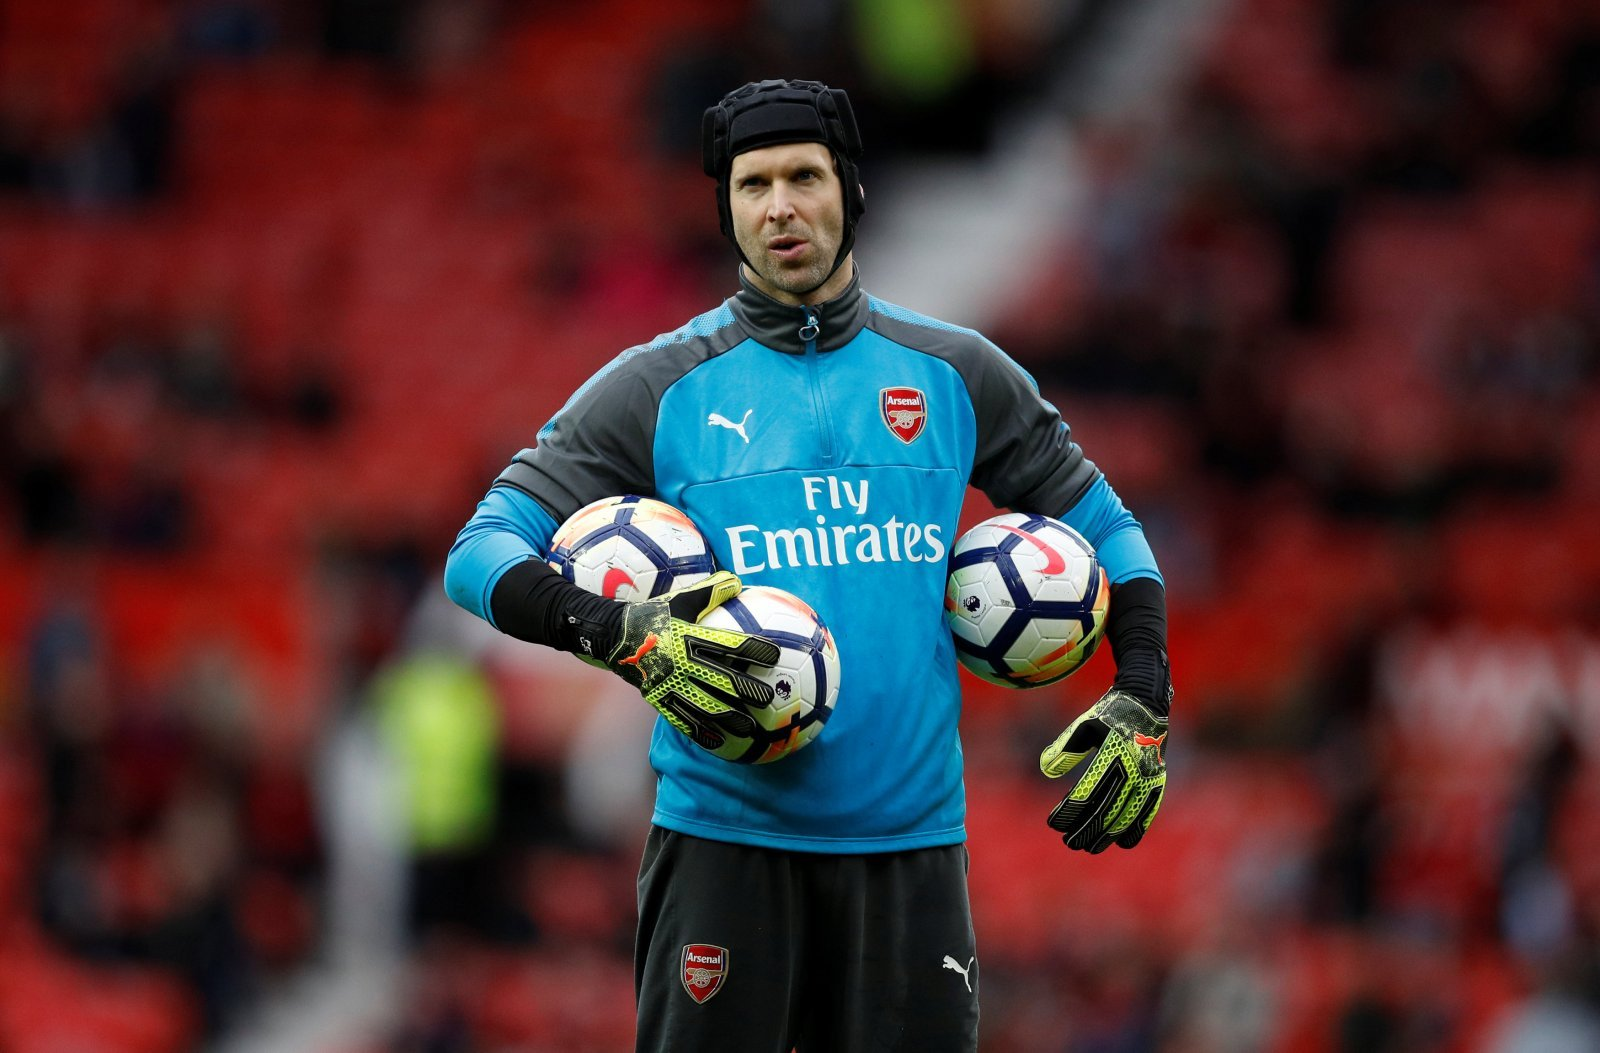 Arsenal fans were wrong to criticise Petr Cech following superb performances